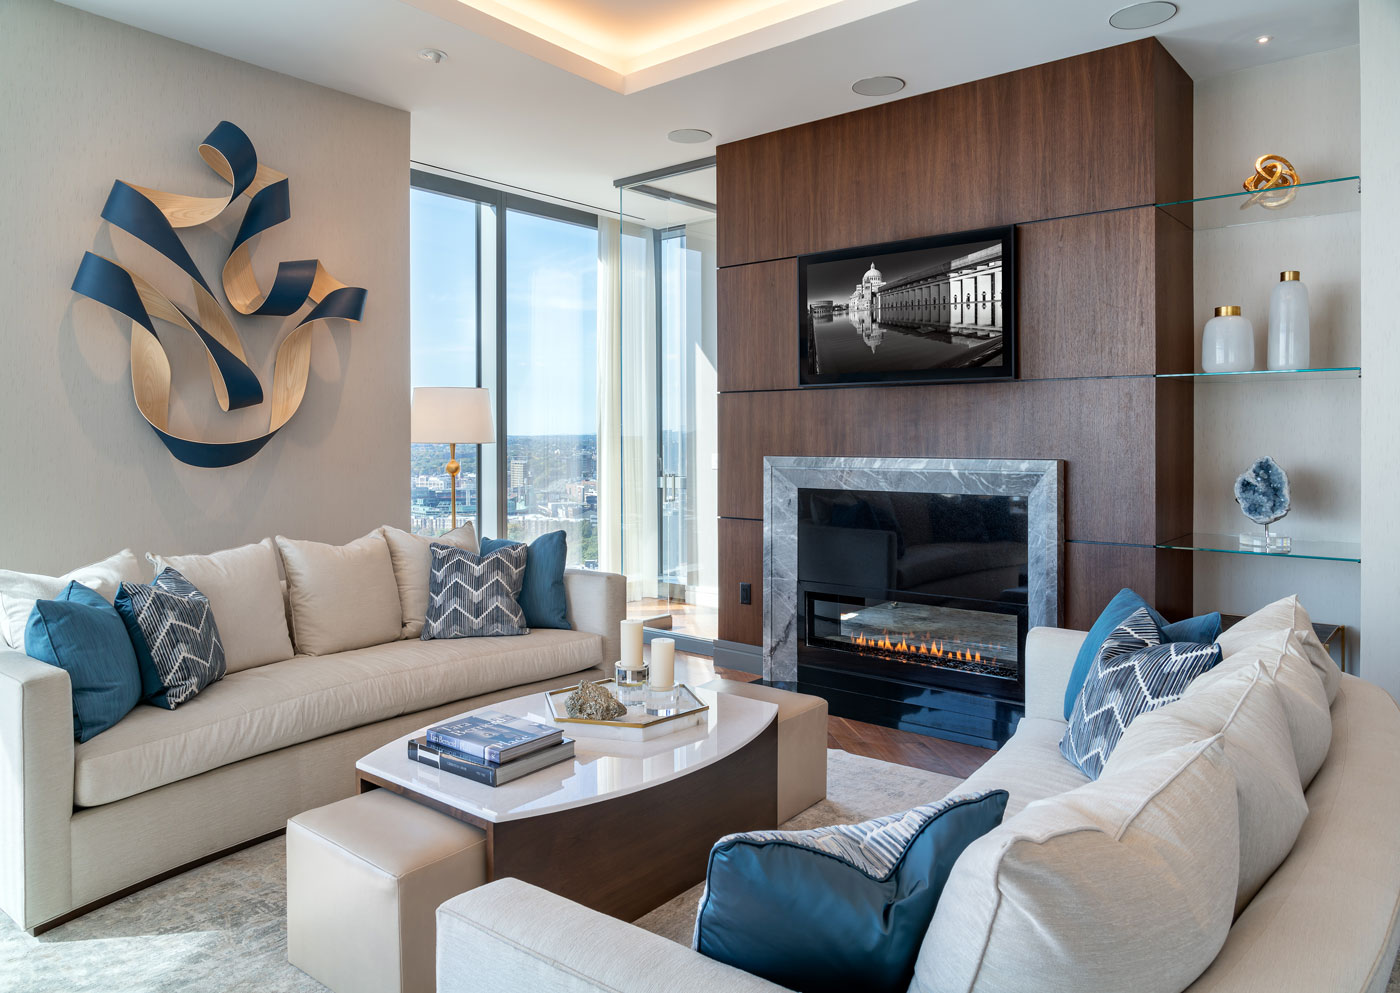 High-end living room design by interior designer Michael Carter of Carter & Company at One Dalton, Four Seasons Hotel and Private Residences